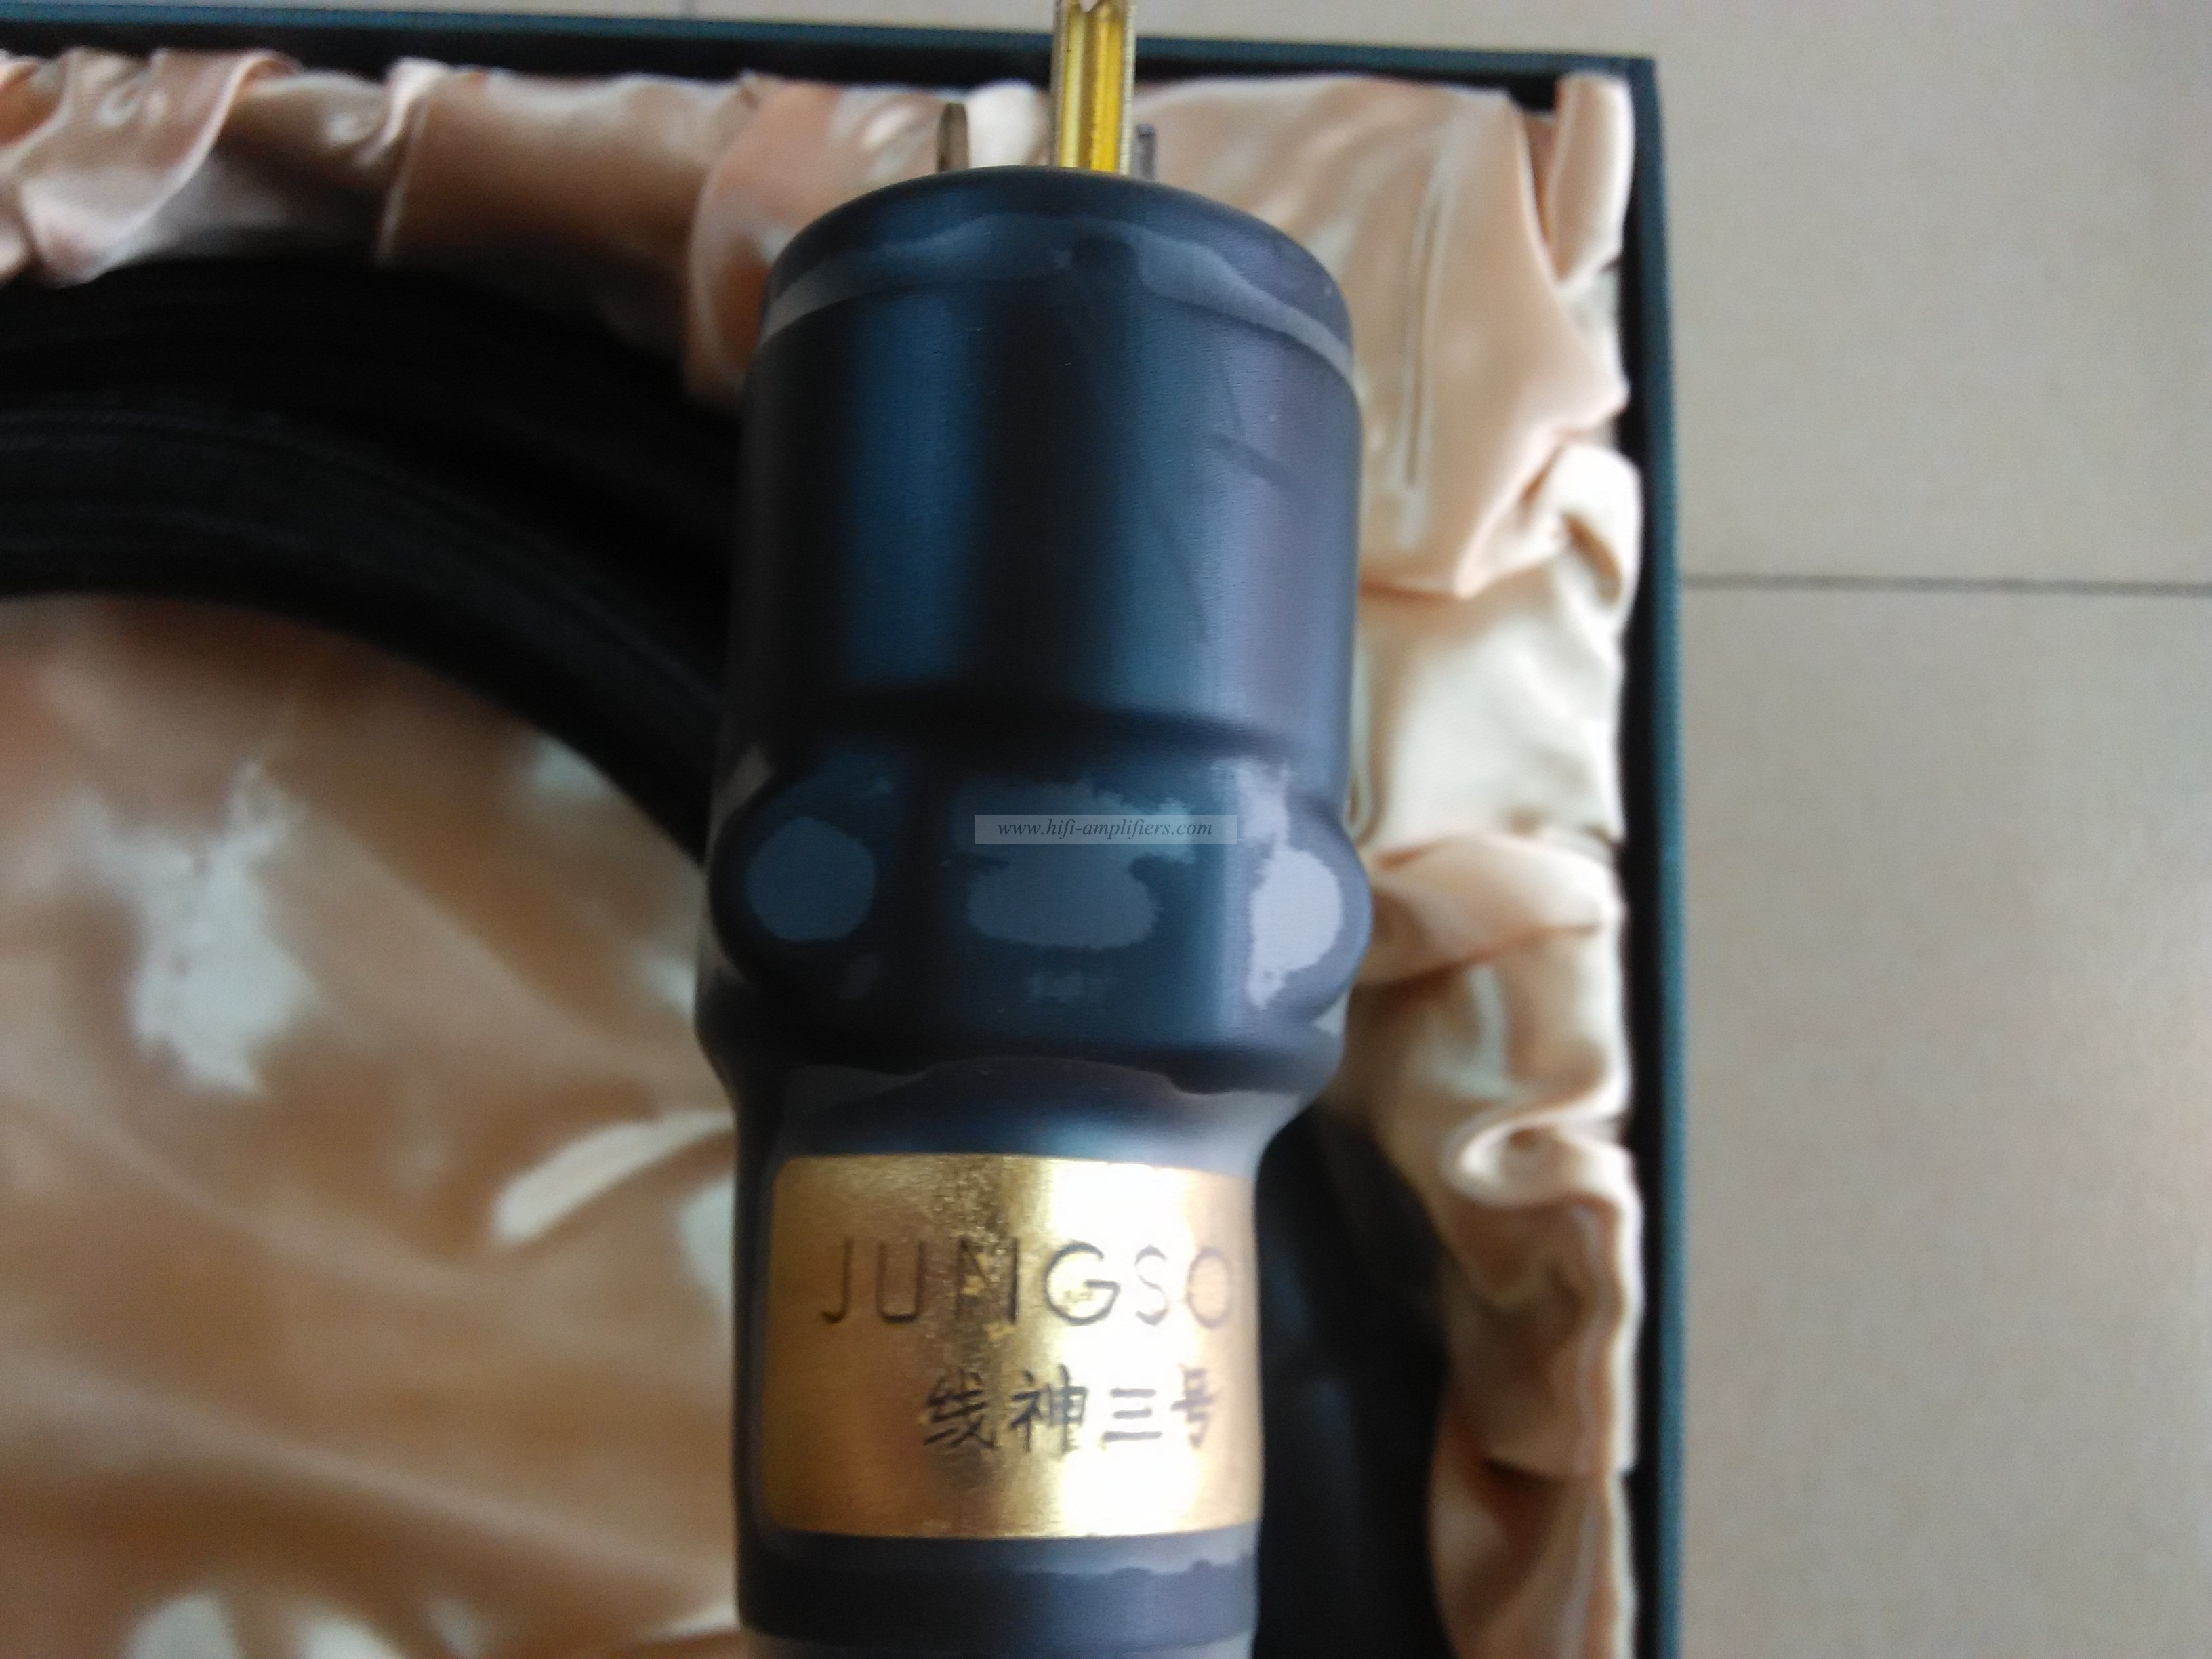 JungSon Deity No.3 Power Cable US Plug HIFI Copper Power Cord for Hi-end System